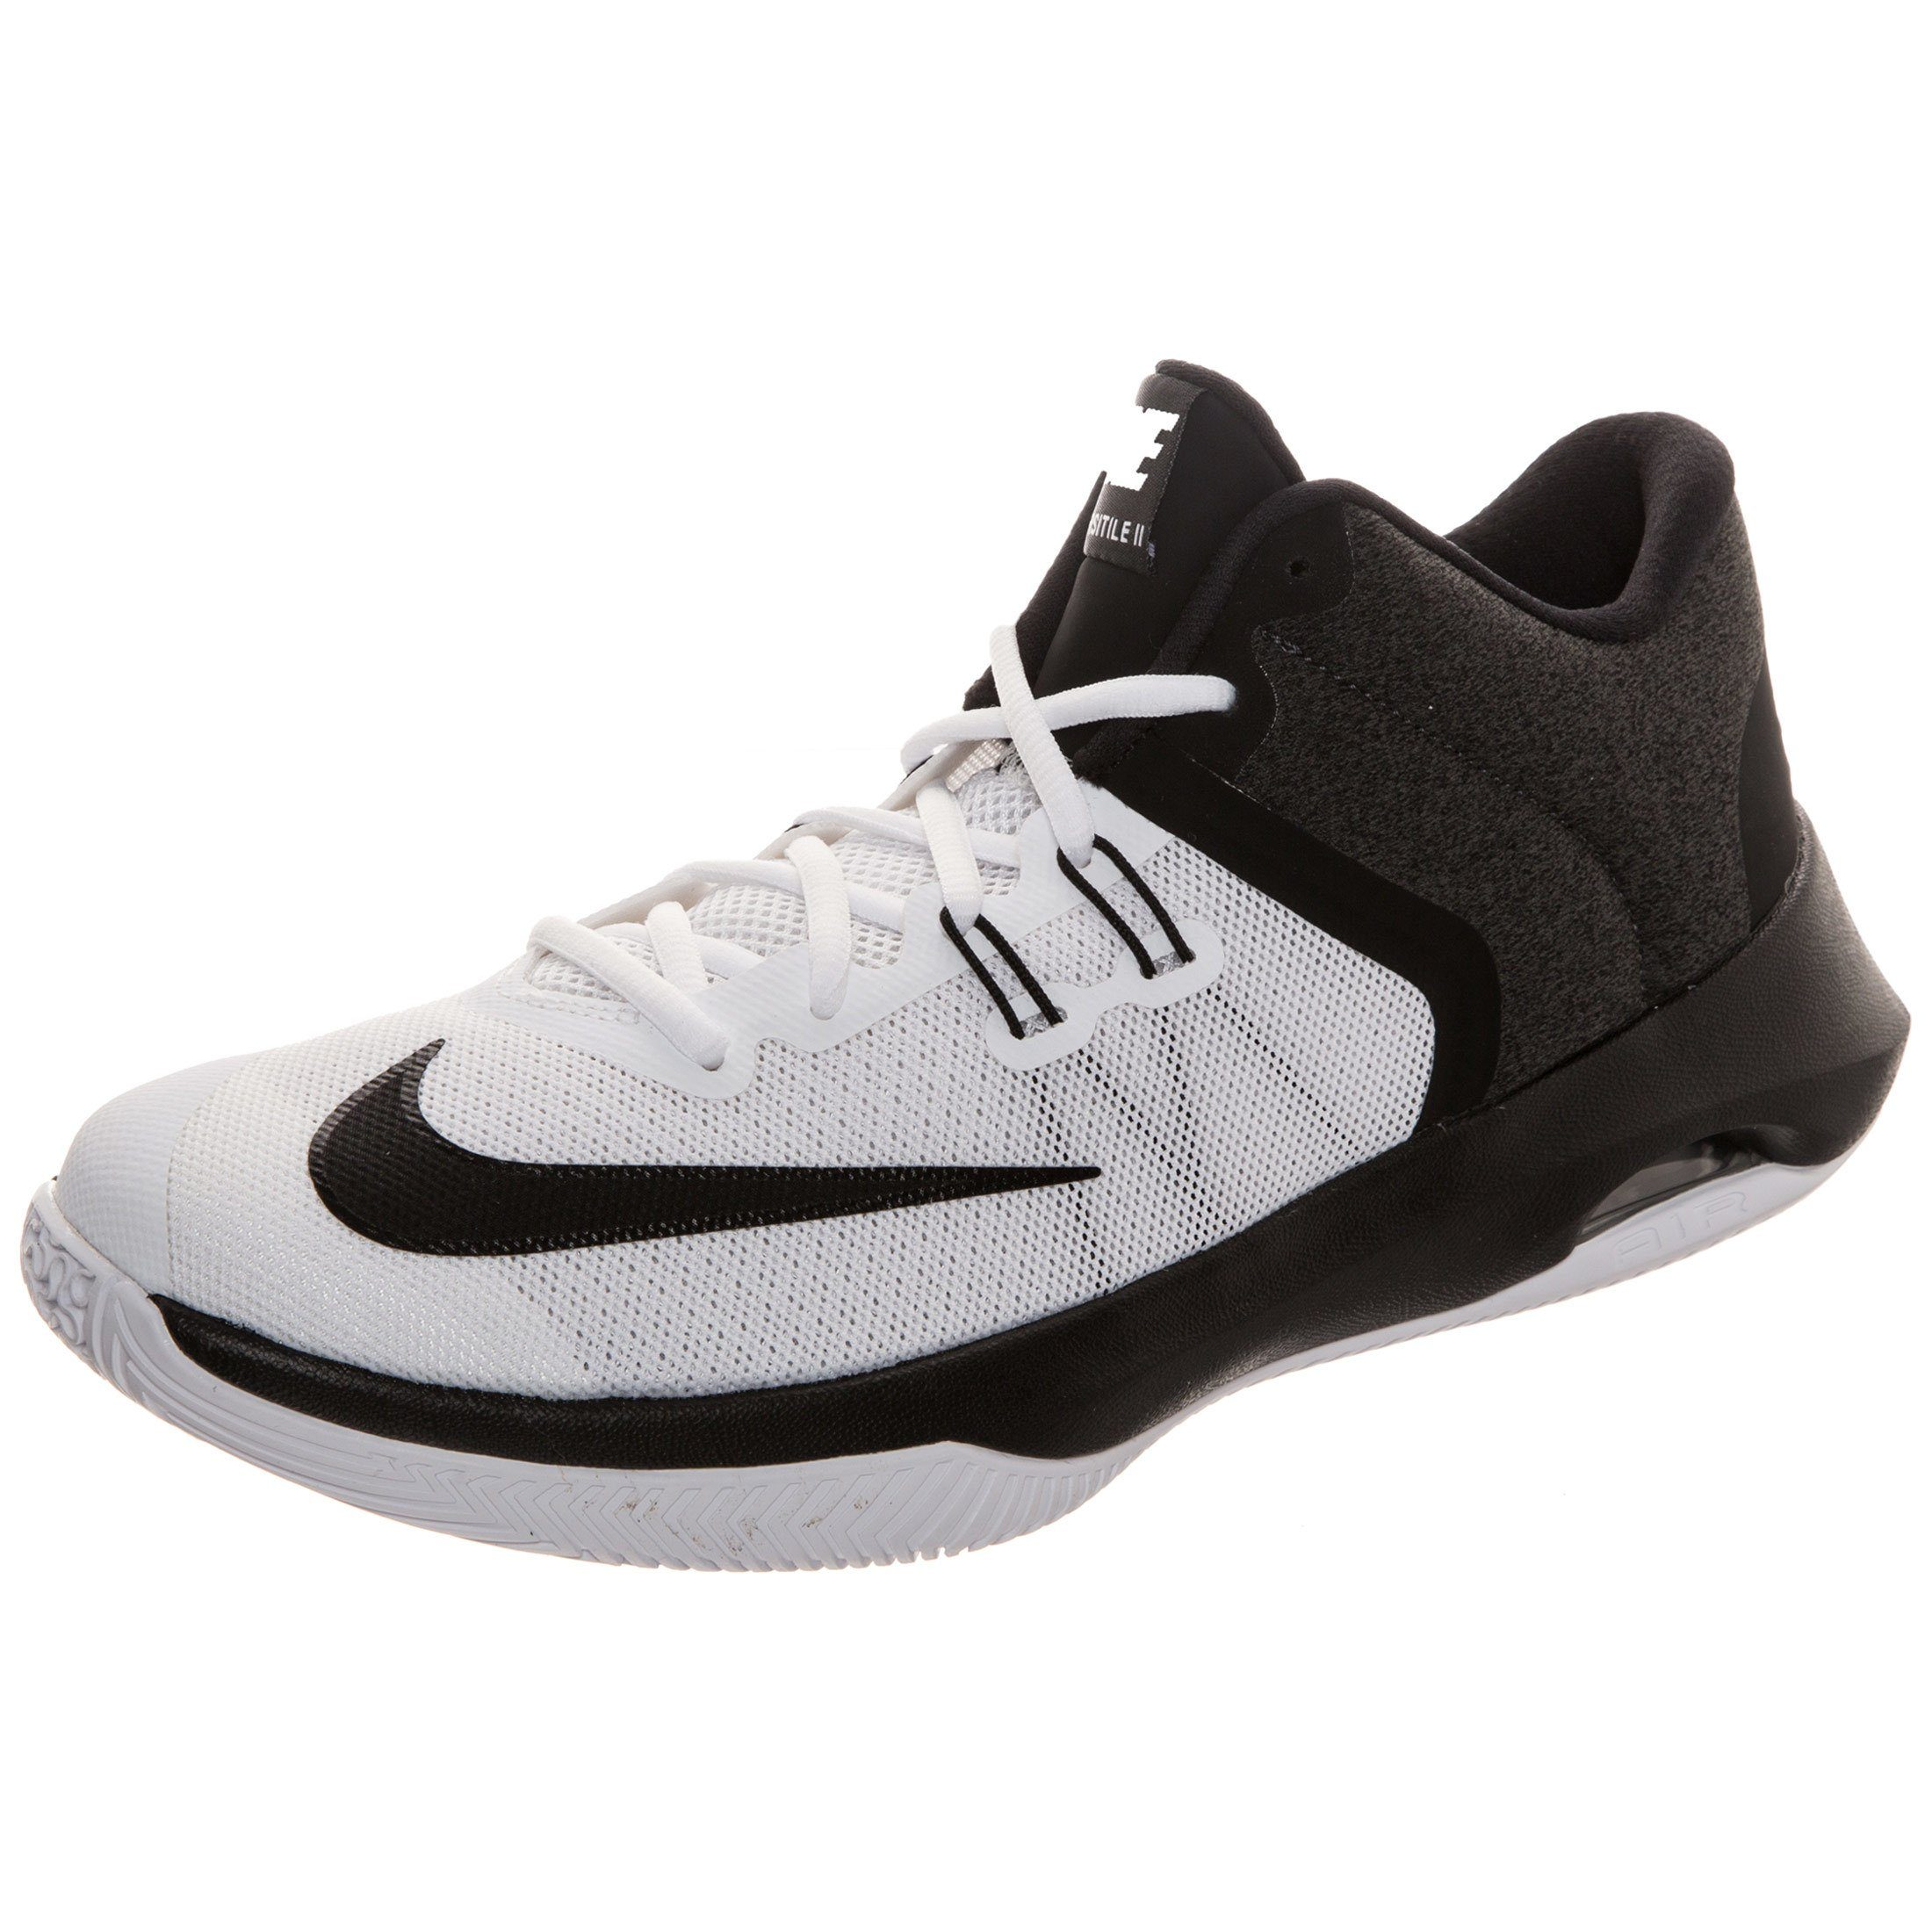 Nike Basketballschuh »Air Versitile Ii«